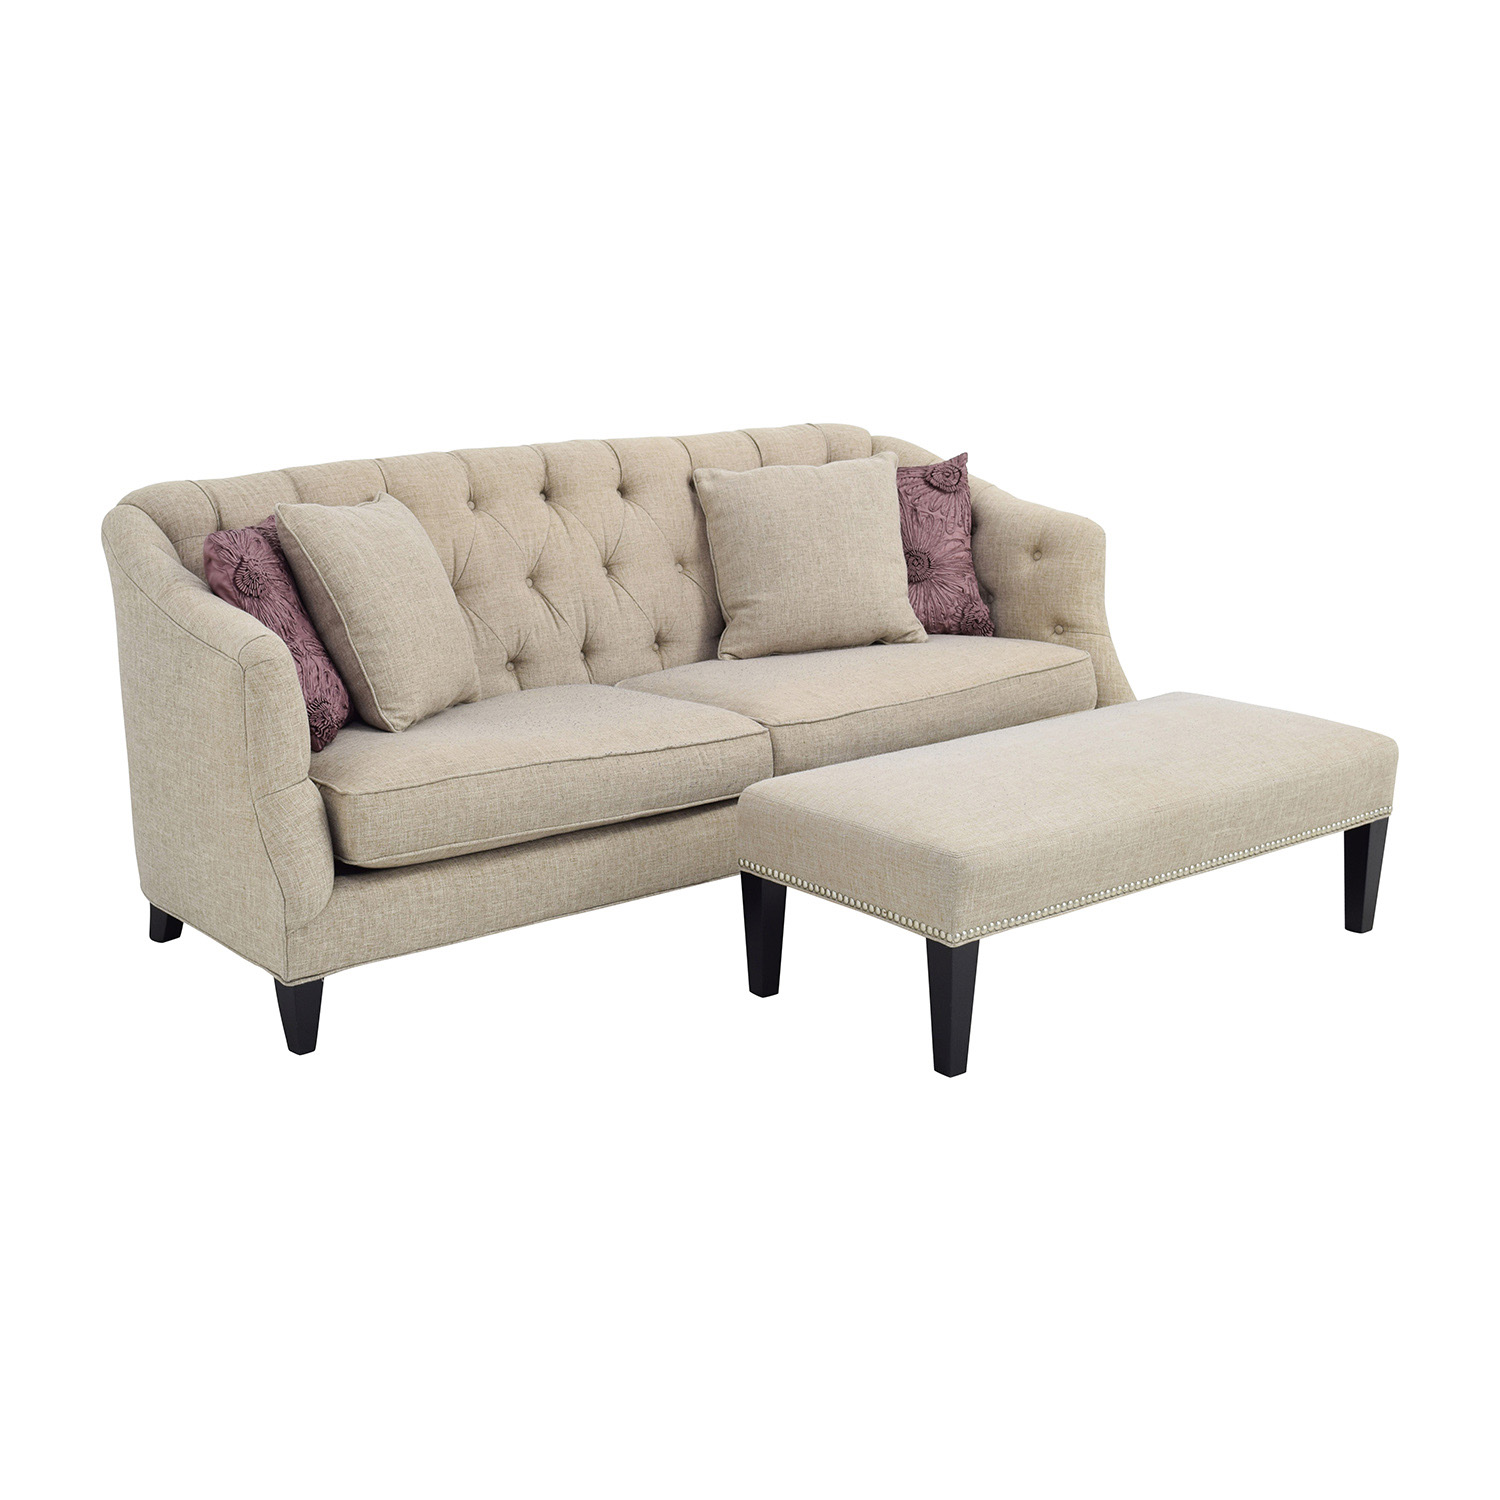 71% OFF Raymour and Flanigan Raymour & Flanigan Tufted Beige